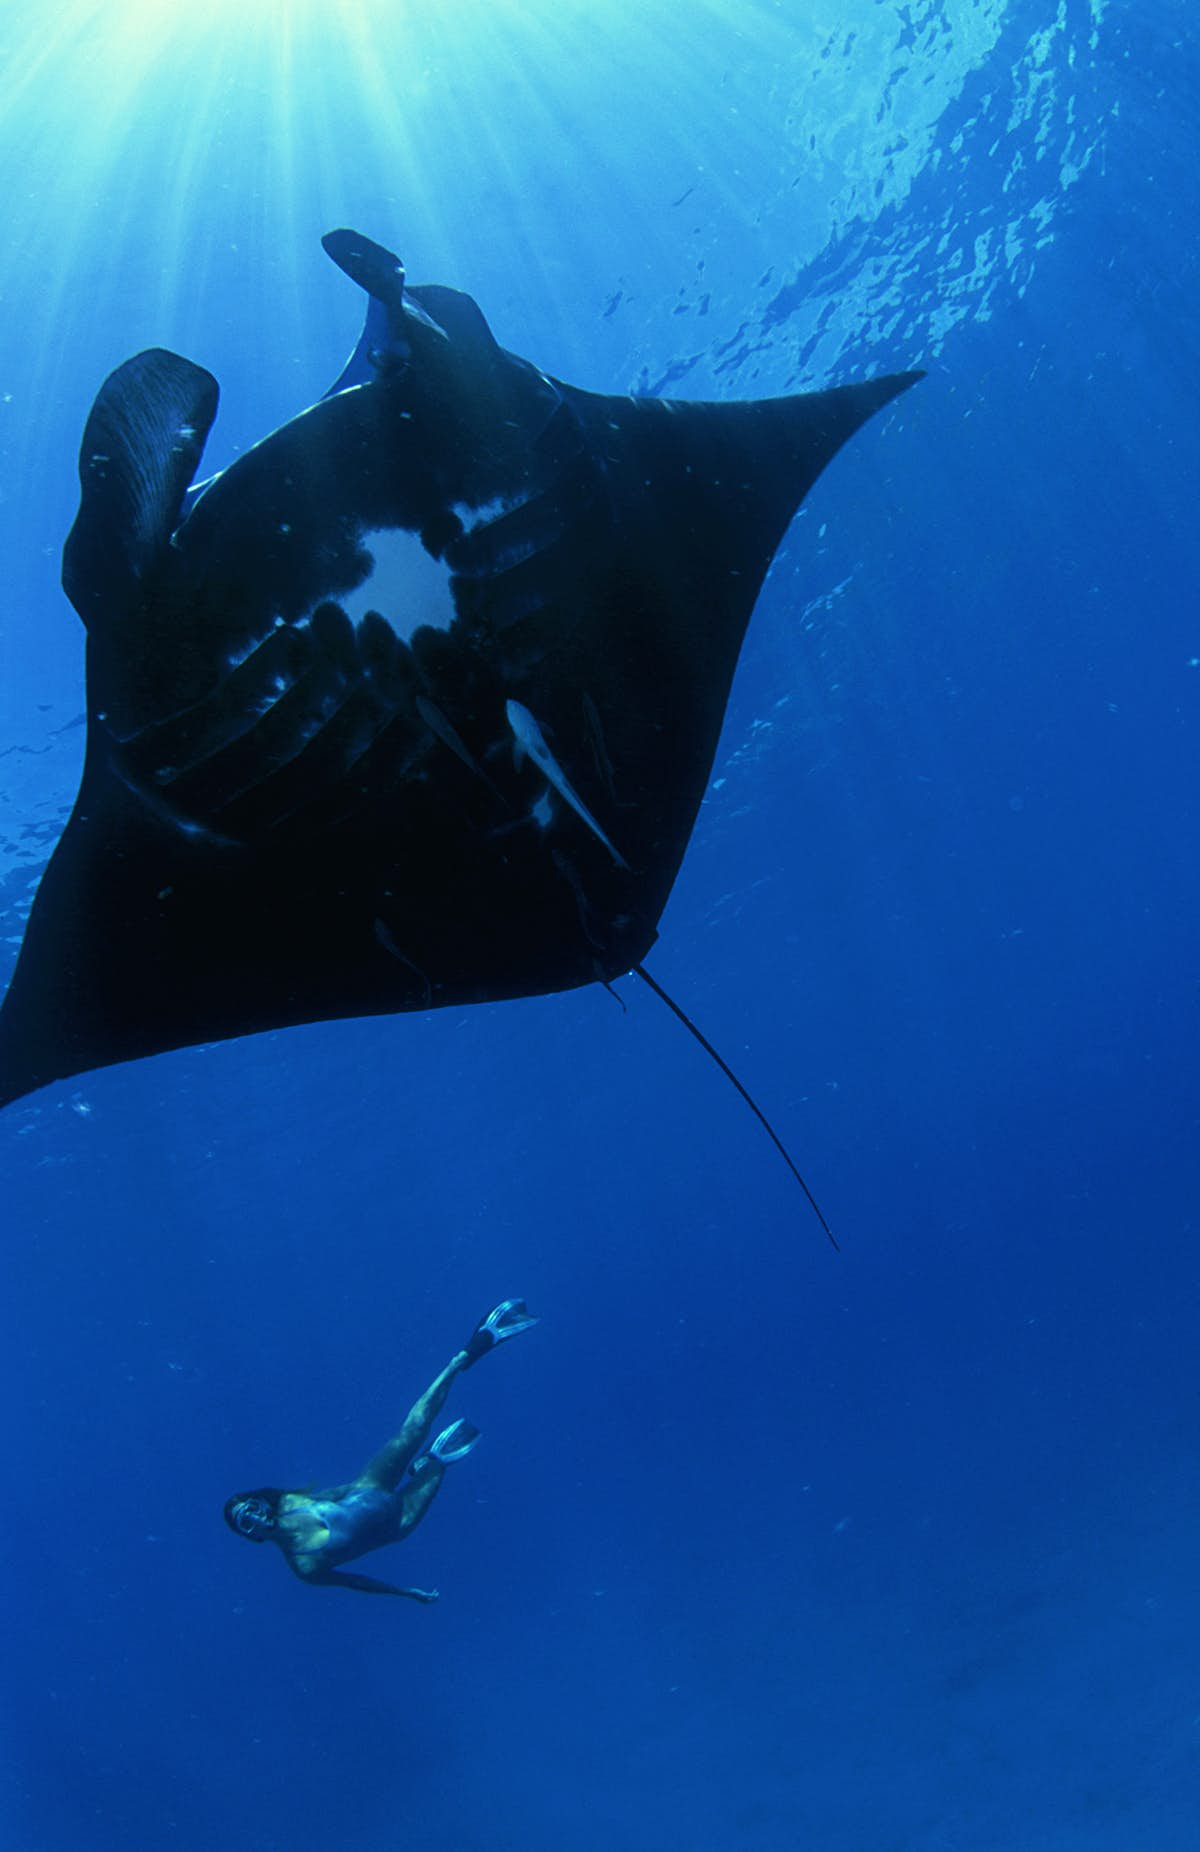 A snorkeler in the distance swims in the deep blue water with a large manta ray in the foreground